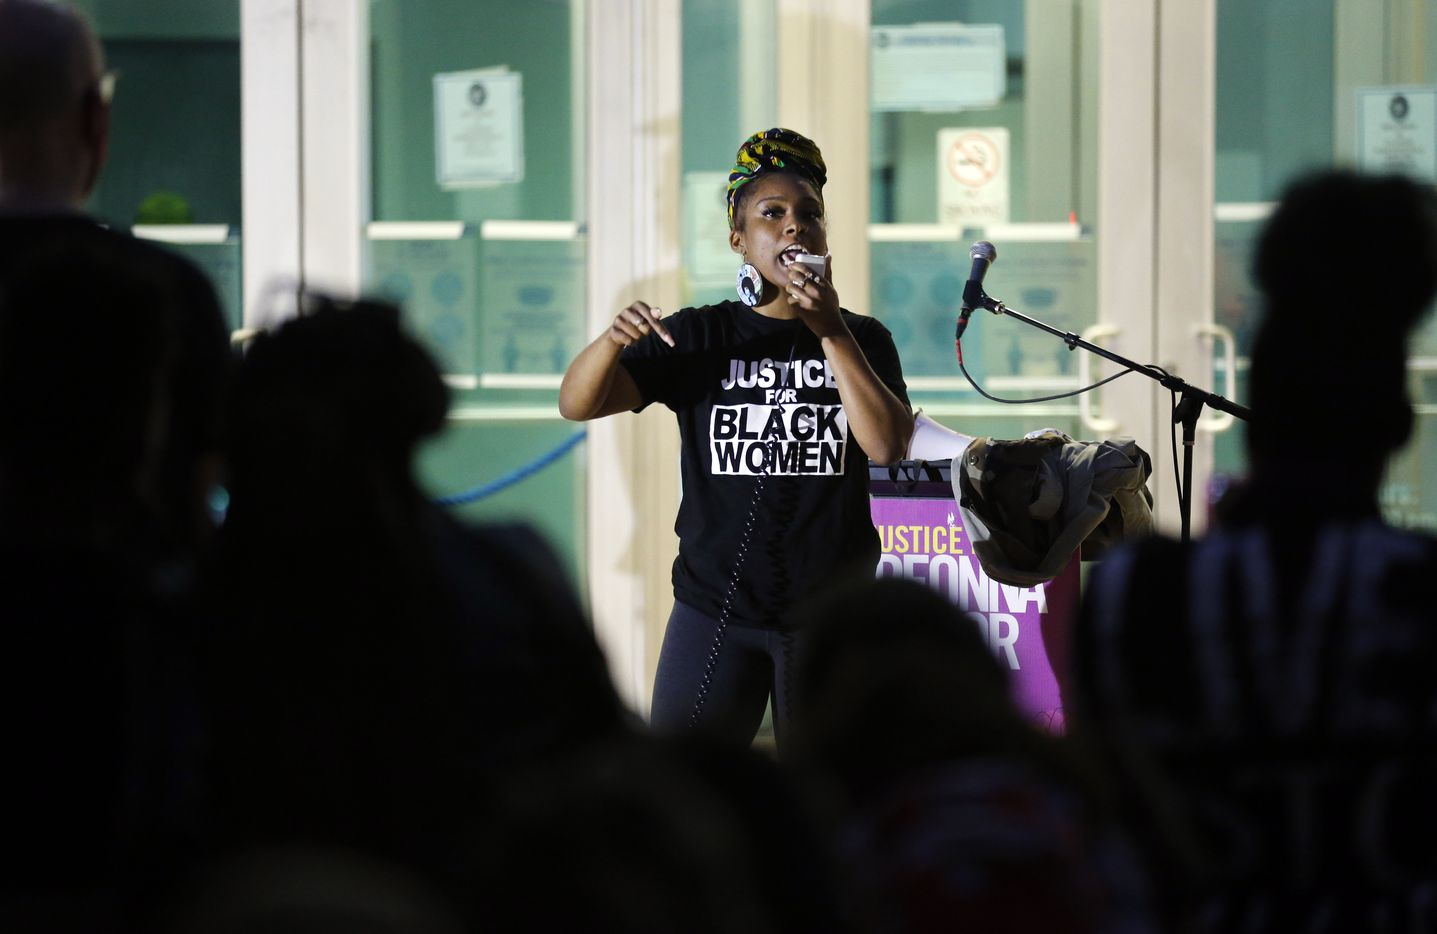 Lelani Russell delivers an emotional speech during a Next Generation Action Network protest outside of Dallas Police Headquarters in Dallas, Wednesday, September 23, 2020.  A Kentucky grand jury brought no charges against the Louisville police for the killing of Breonna Taylor during a drug raid gone wrong. (Tom Fox/The Dallas Morning News)